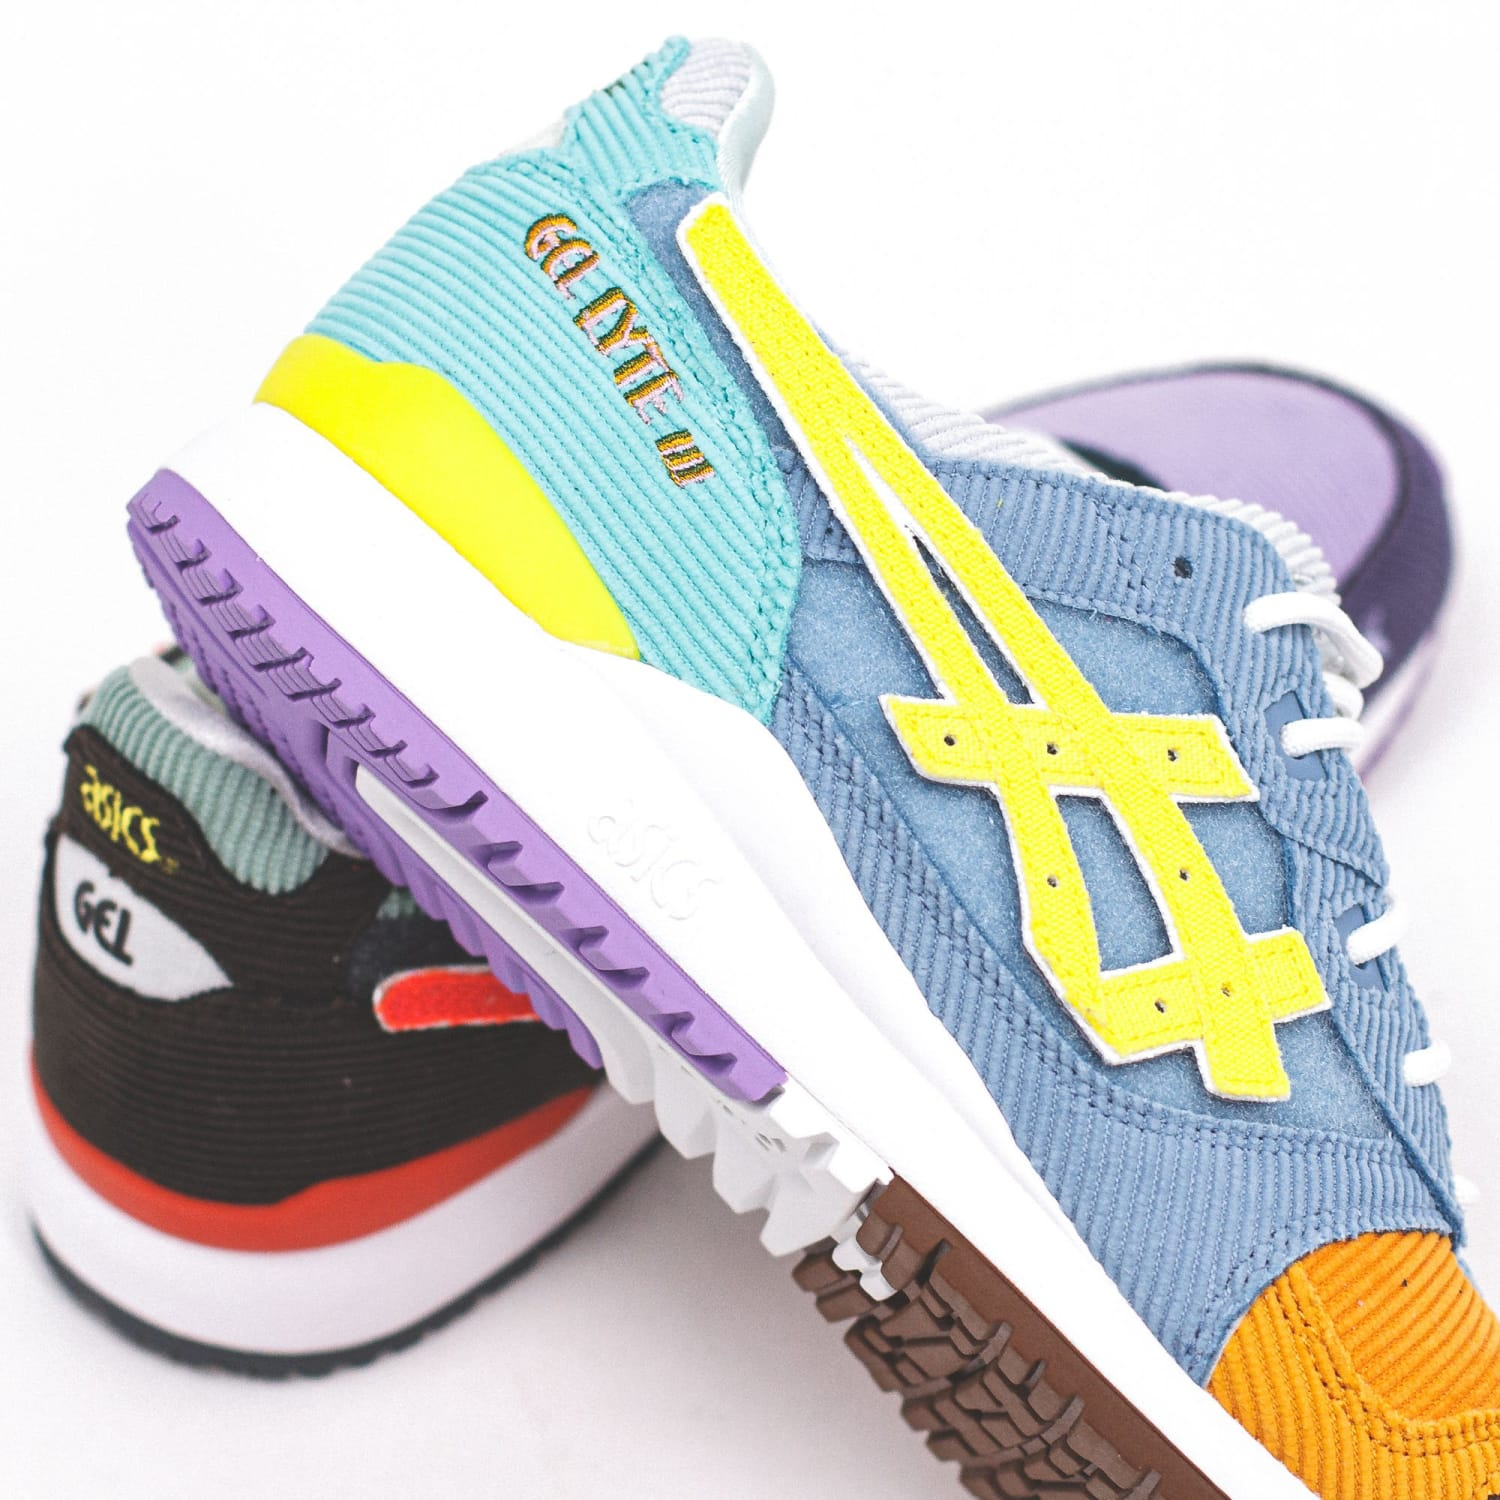 Sean Wotherspoon x ATMOS x ASICS GEL-Lyte III OG - 1203A019-000